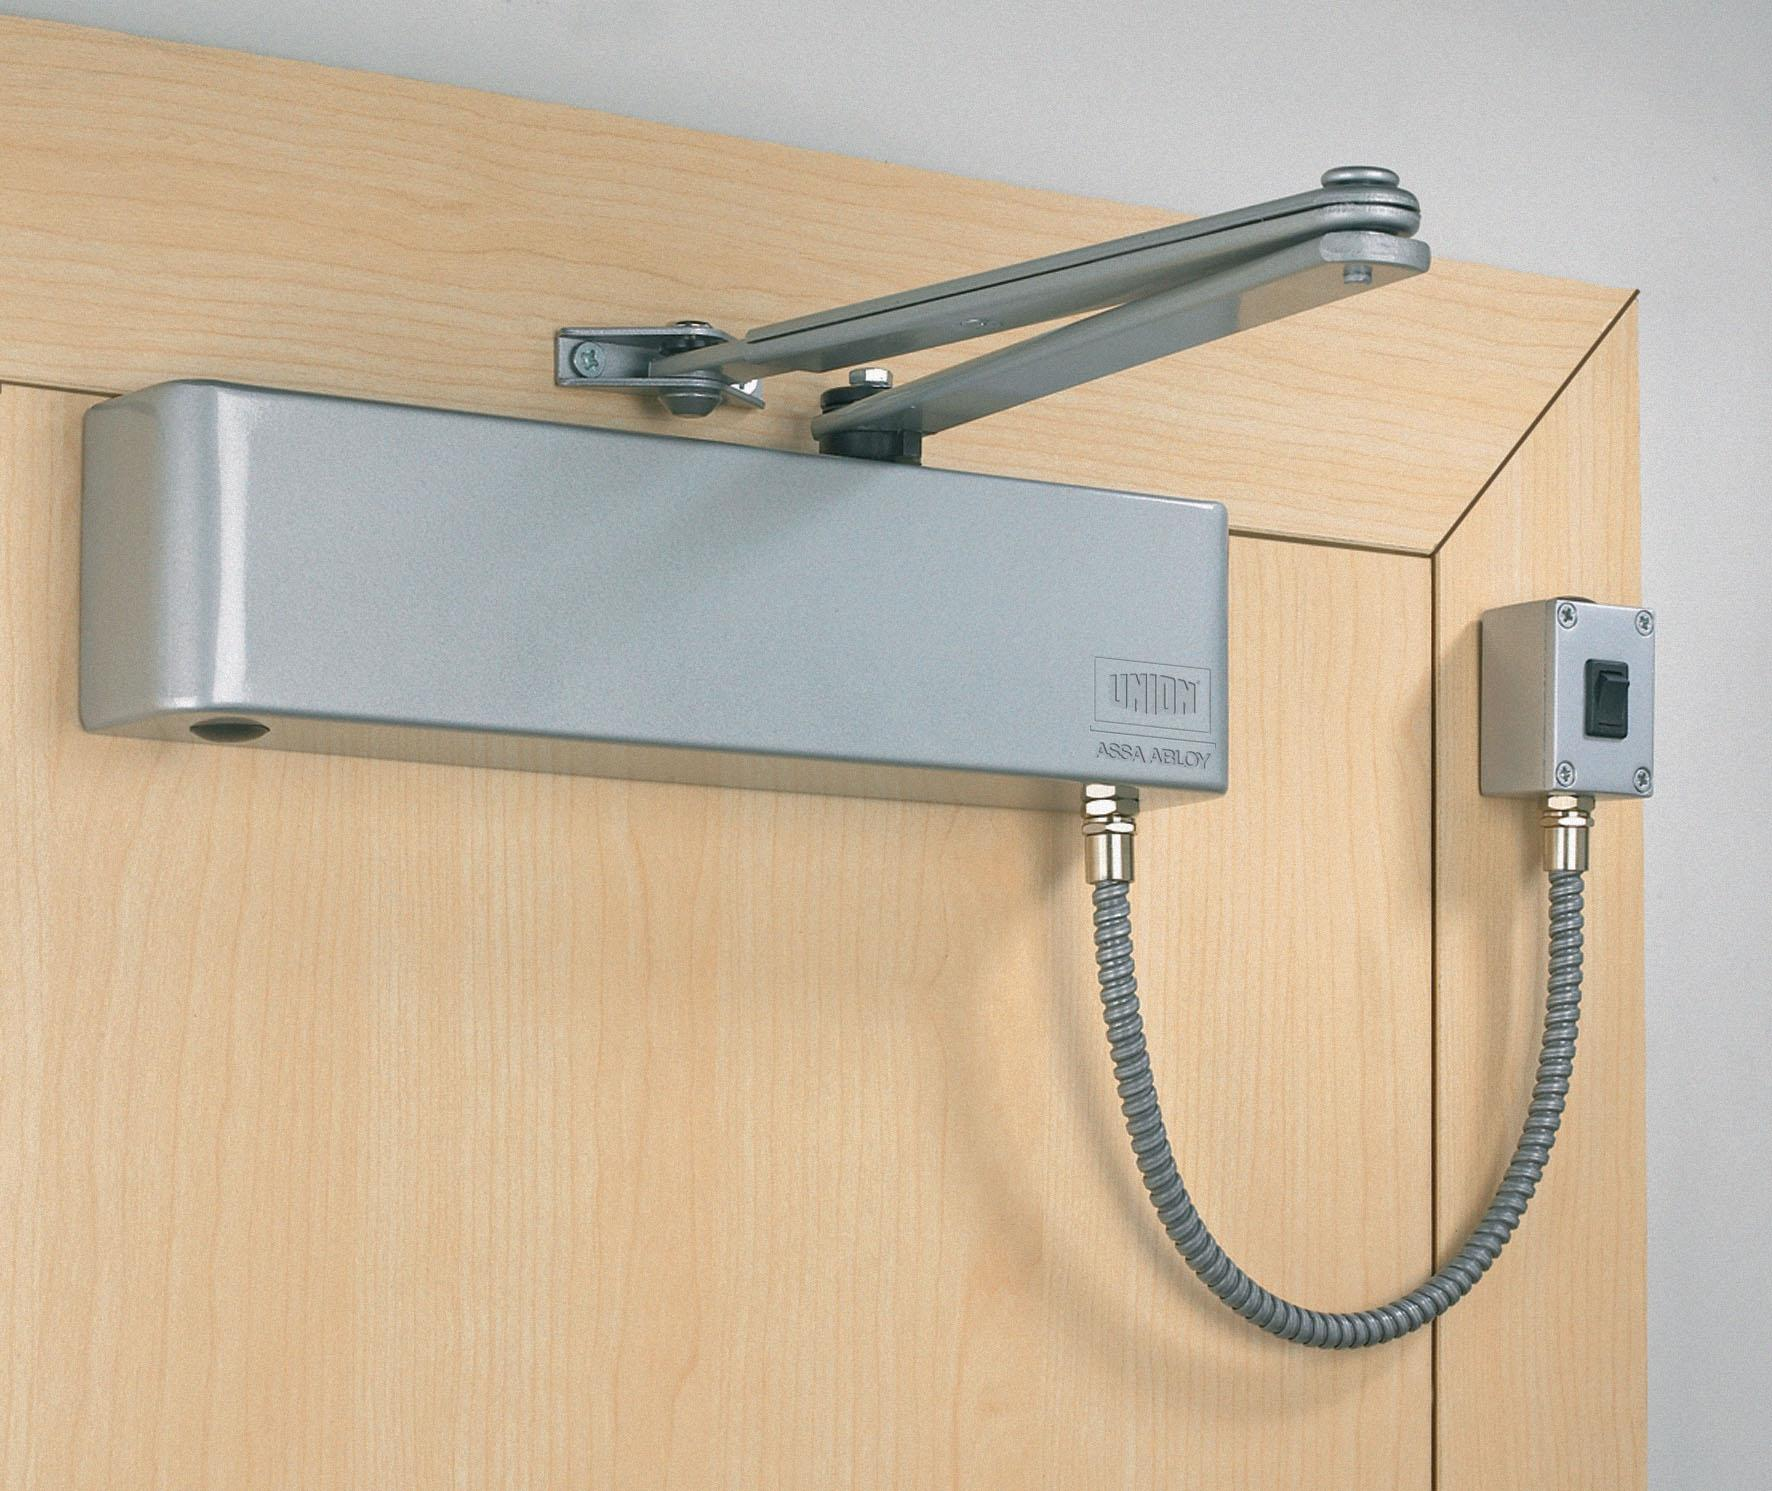 Electro Magnetic Door Closers